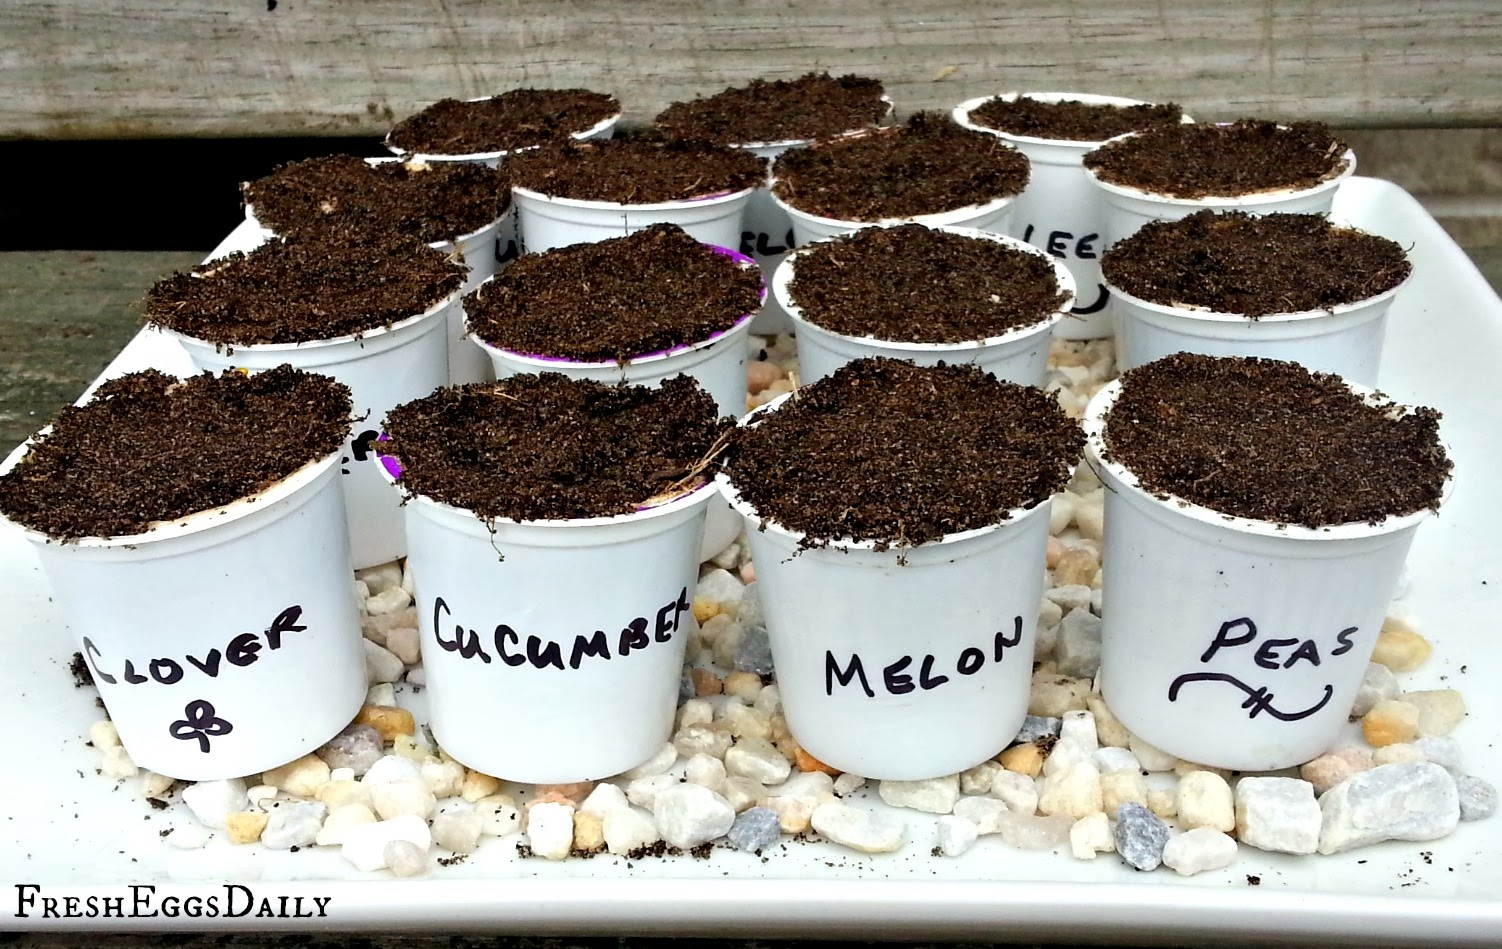 starting seeds in k-cups